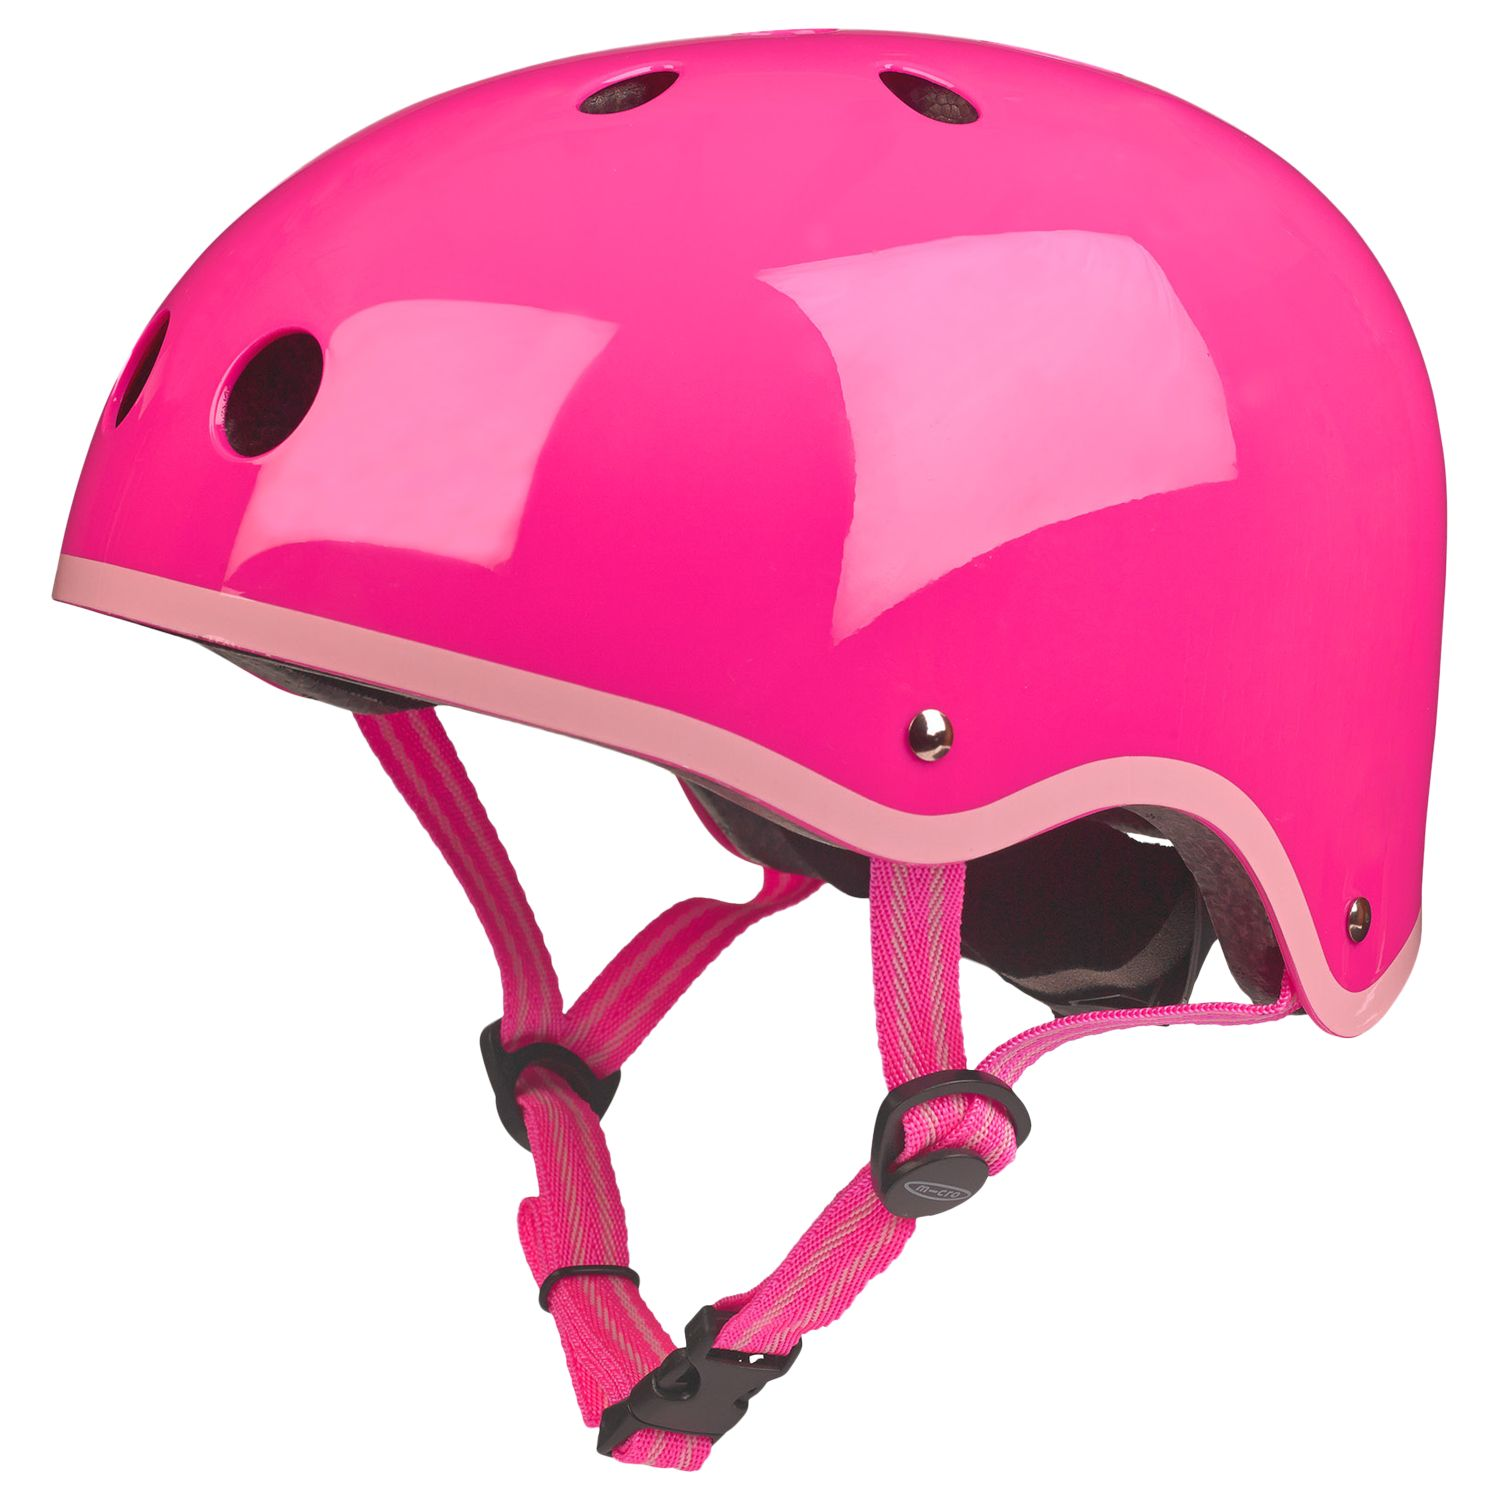 Micro Scooters Safety Helmet, Medium, Neon Pink